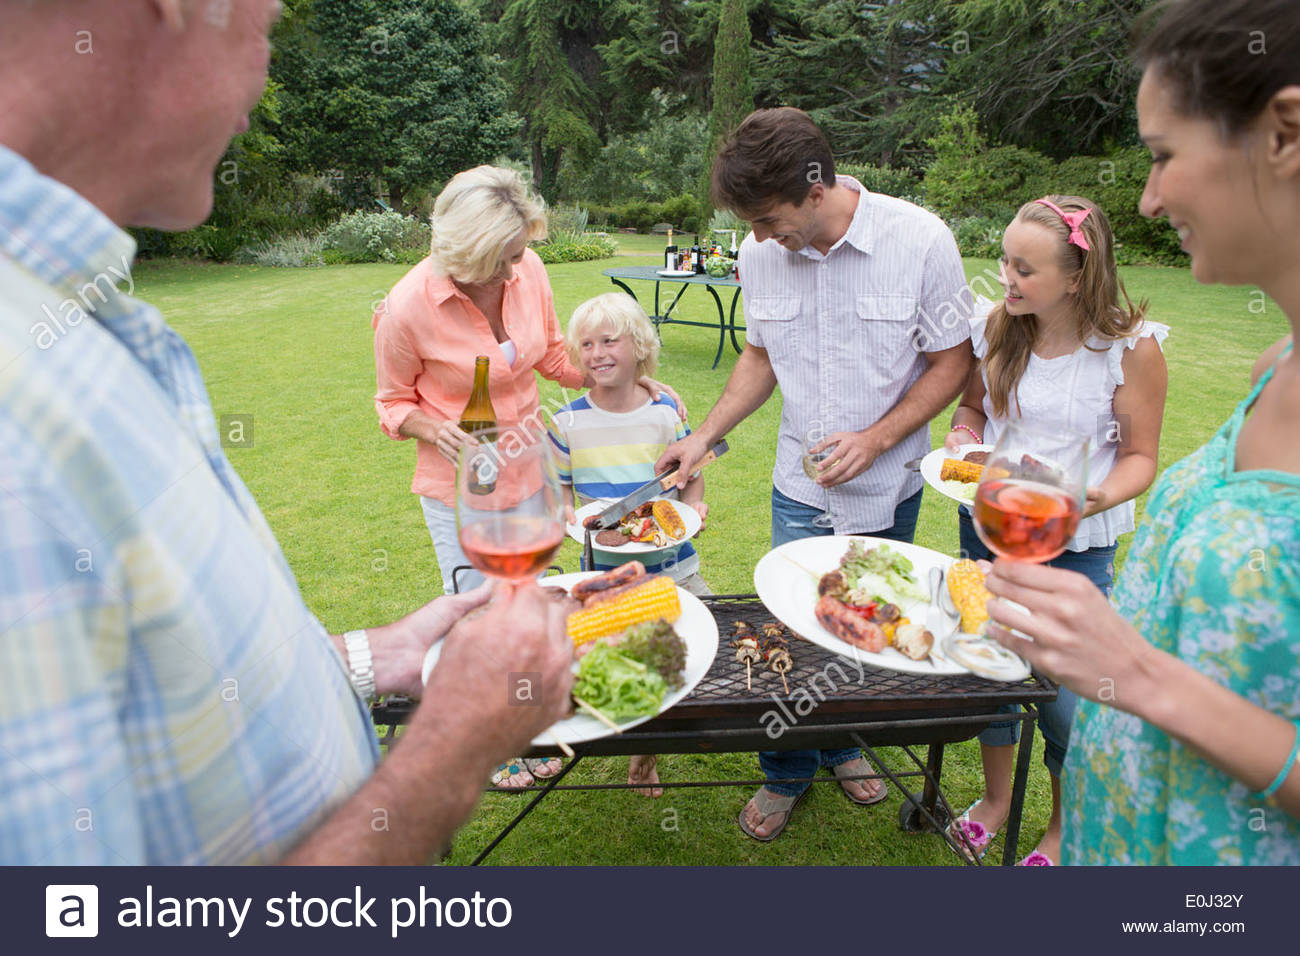 Multi-generation family serving barbecue - Stock Image